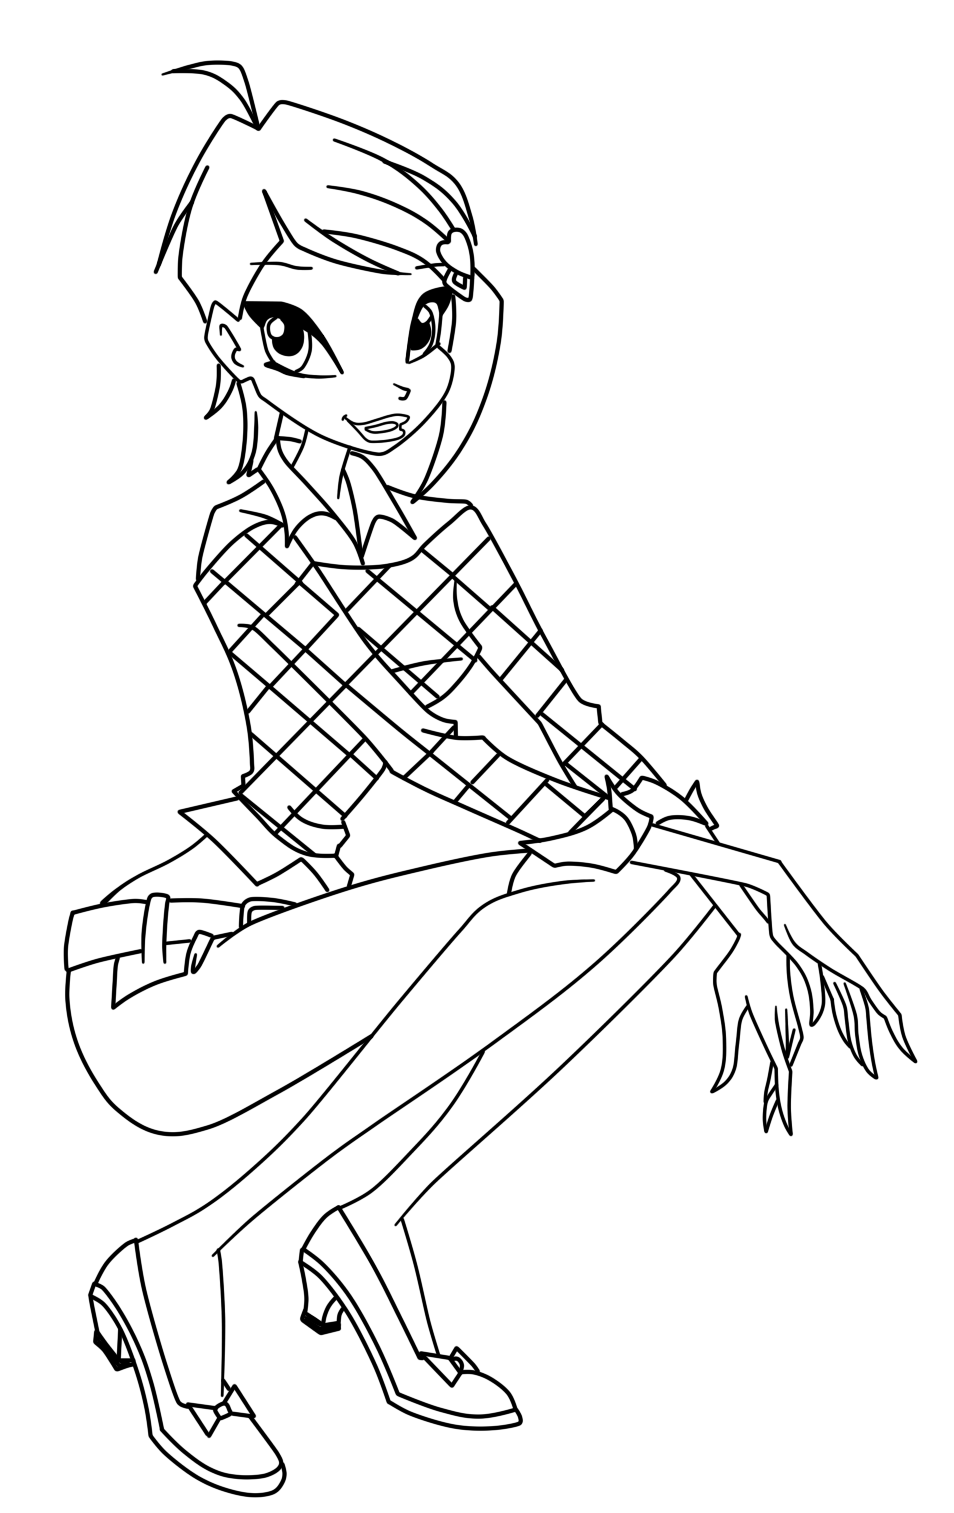 coloring winx club winx tynix coloring pages to download and print for free winx club coloring